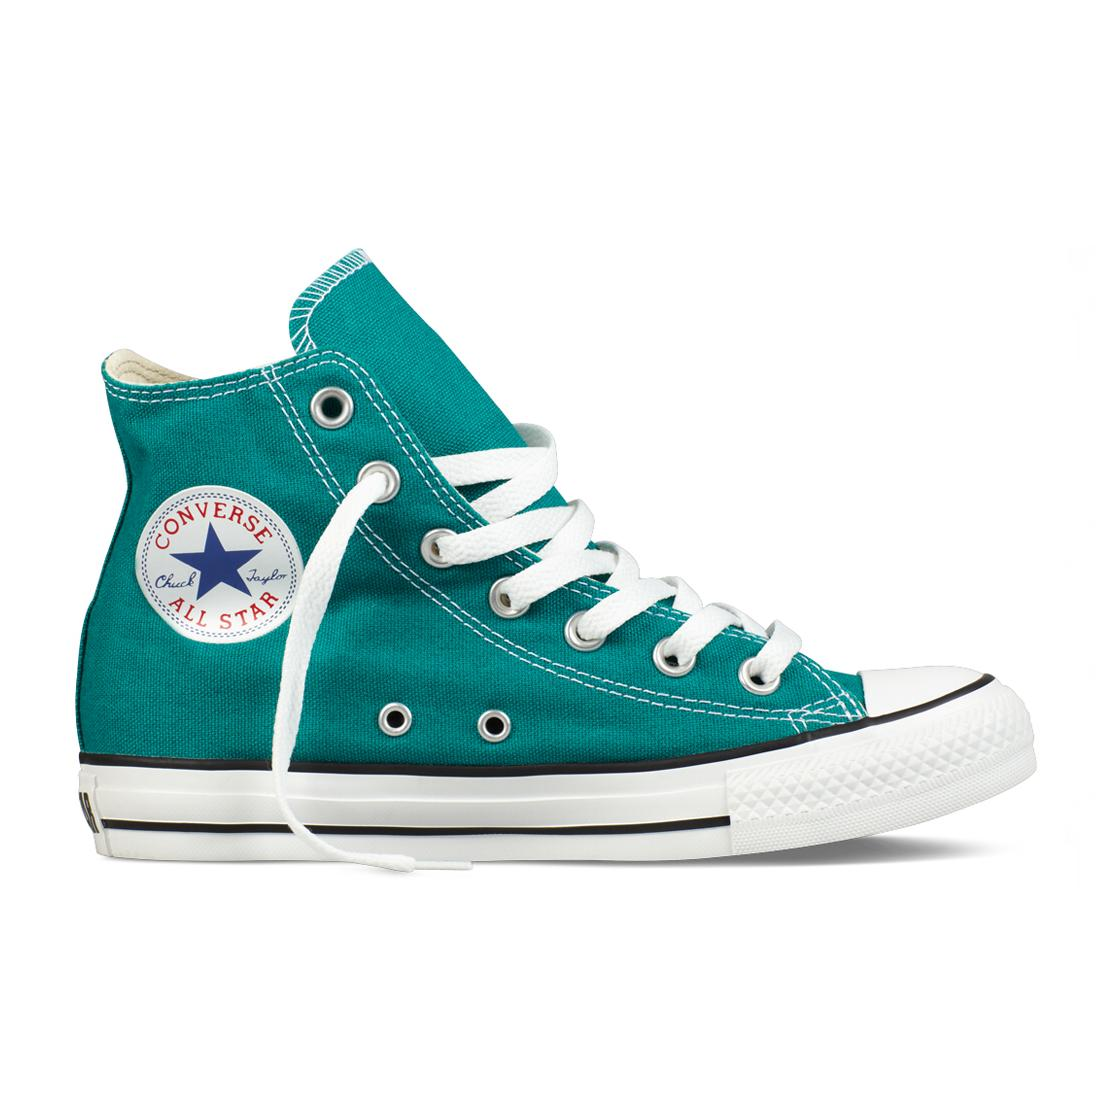 converse chuck taylor all star hi schuhe high top sneaker damen herren. Black Bedroom Furniture Sets. Home Design Ideas